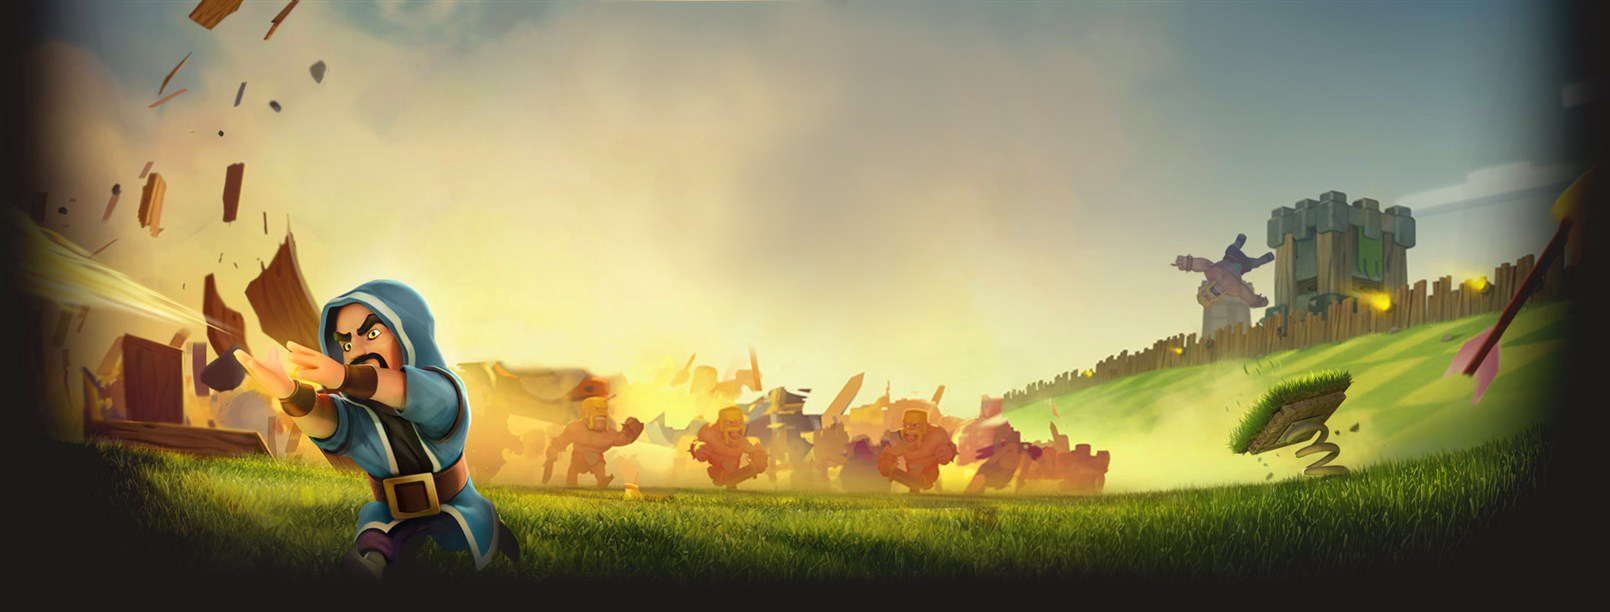 Clash Of Clans Wallpapers Images Photos Pictures Backgrounds 1610x612